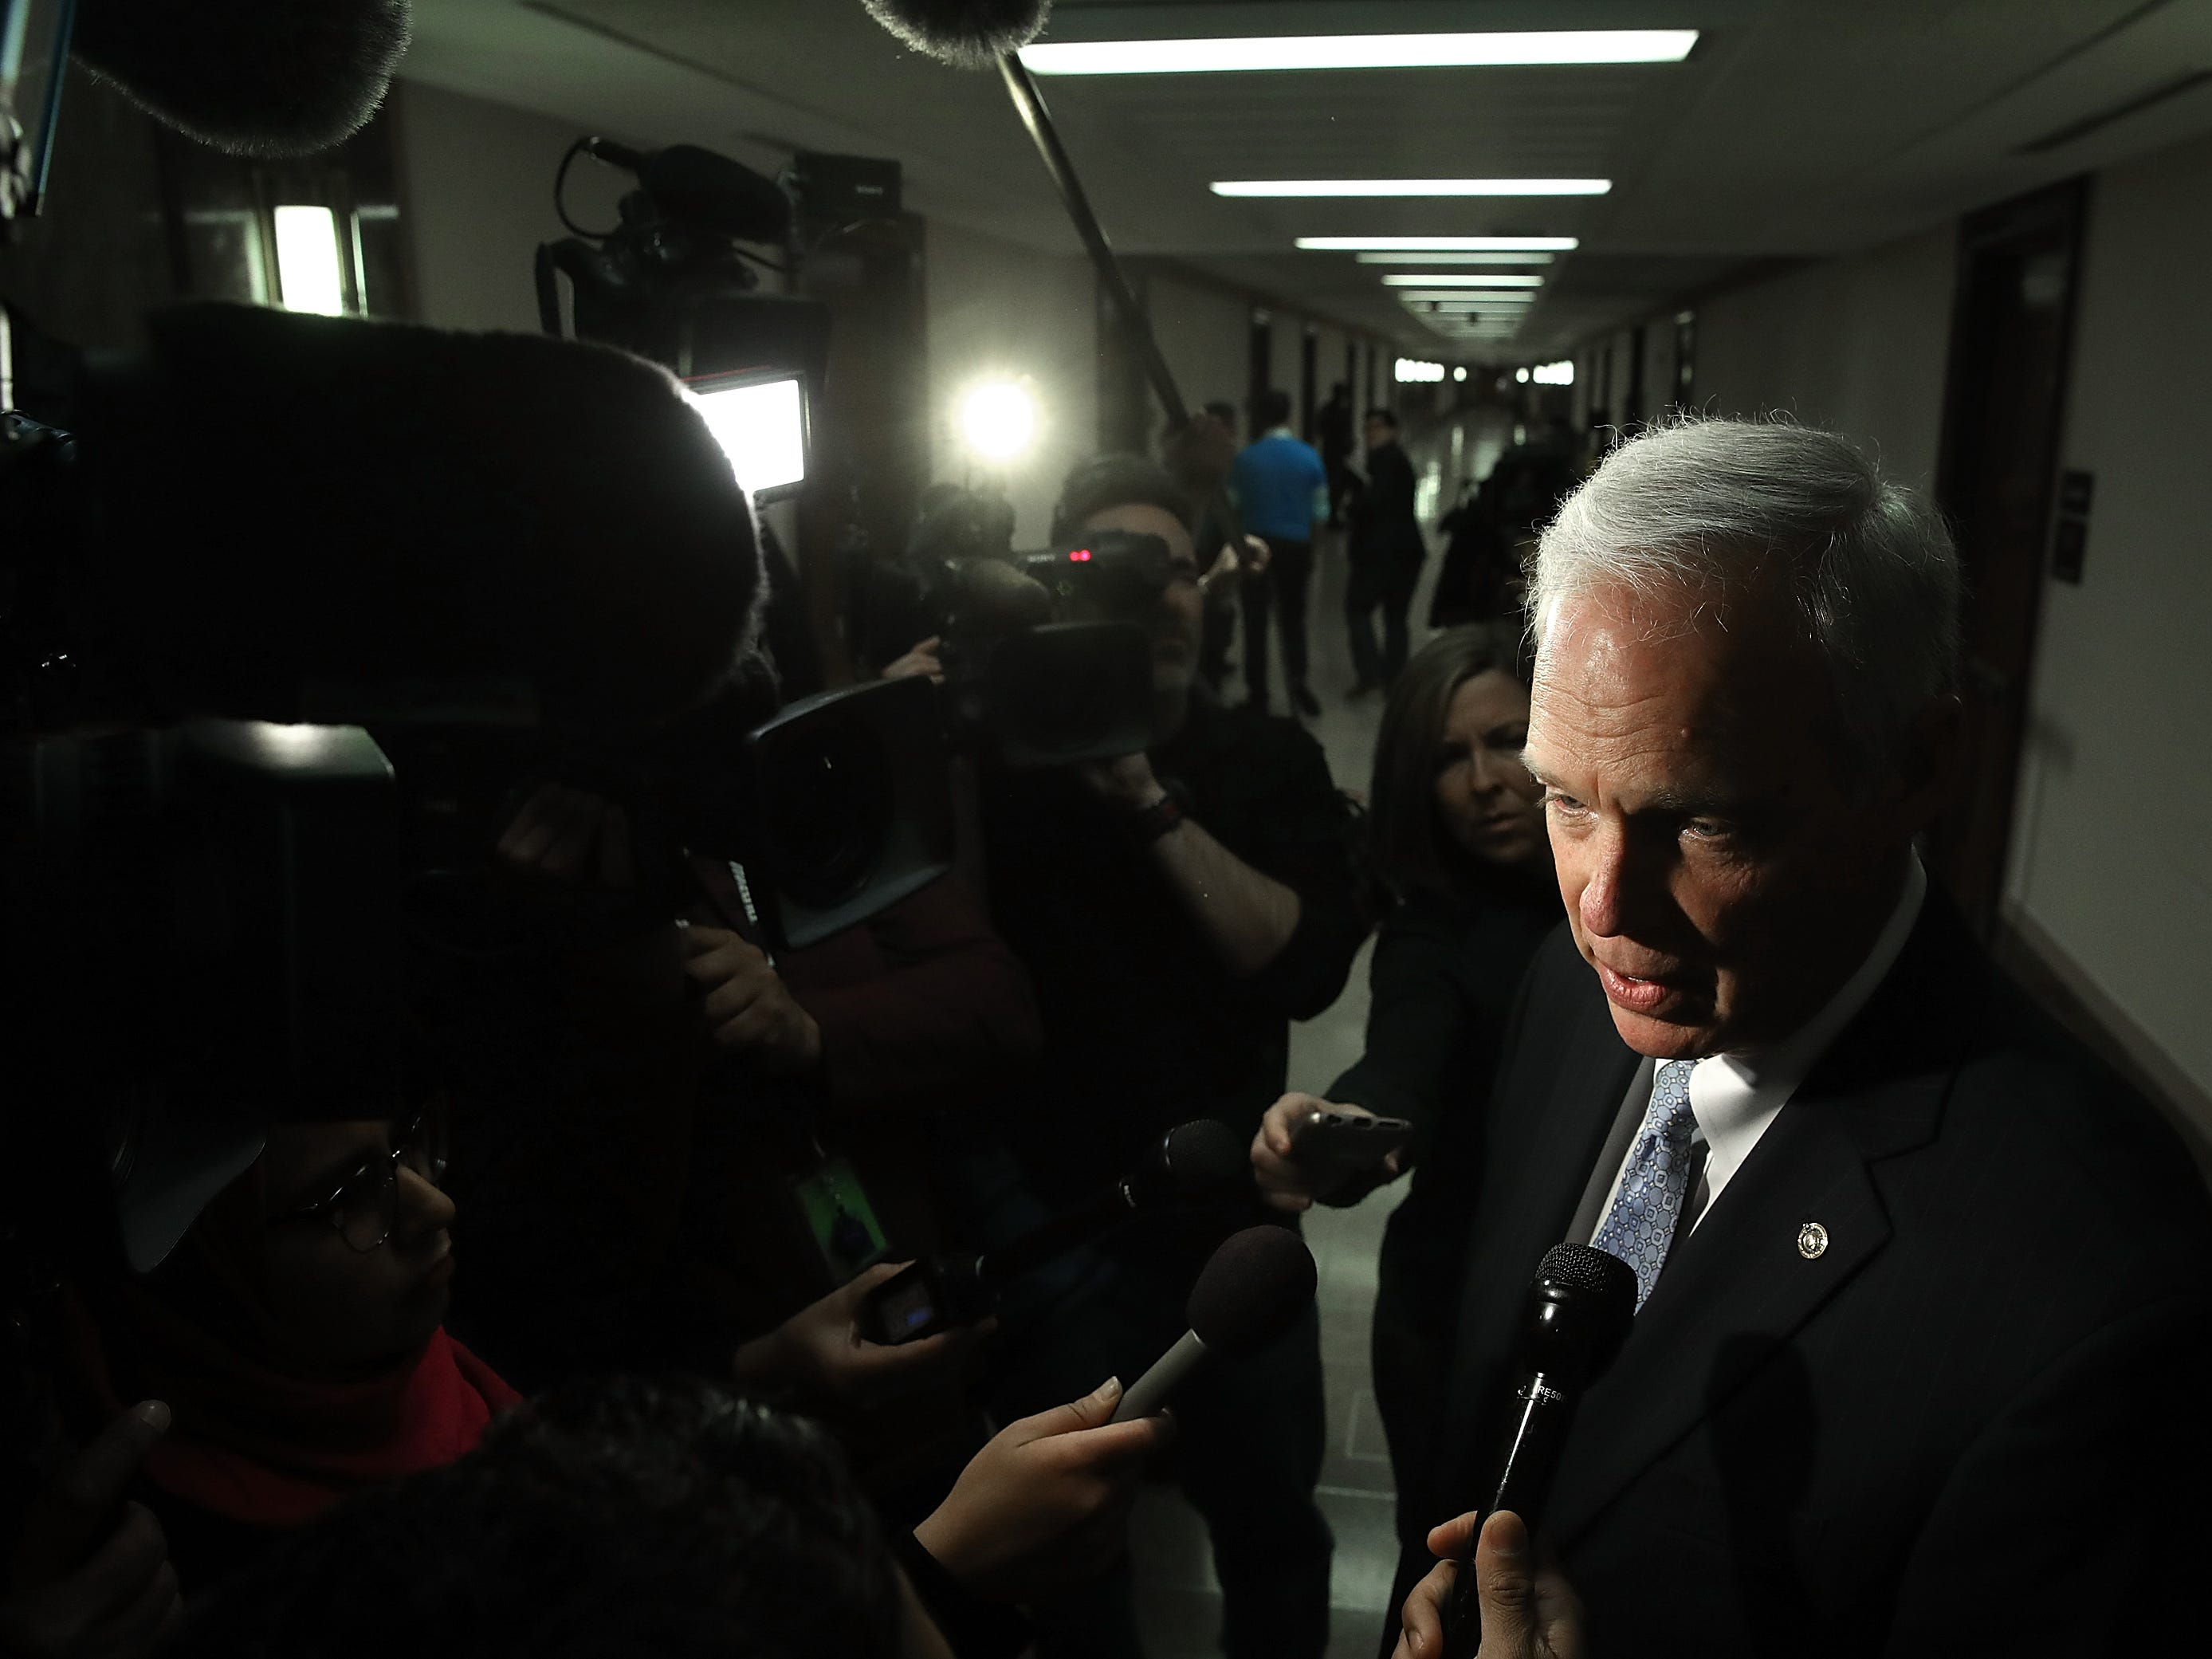 Sen. Ron Johnson (R-WI), chairman of the Homeland Security and Governmental Affairs Committee, answers questions from the press after attending a Senate Budget Committee hearing.